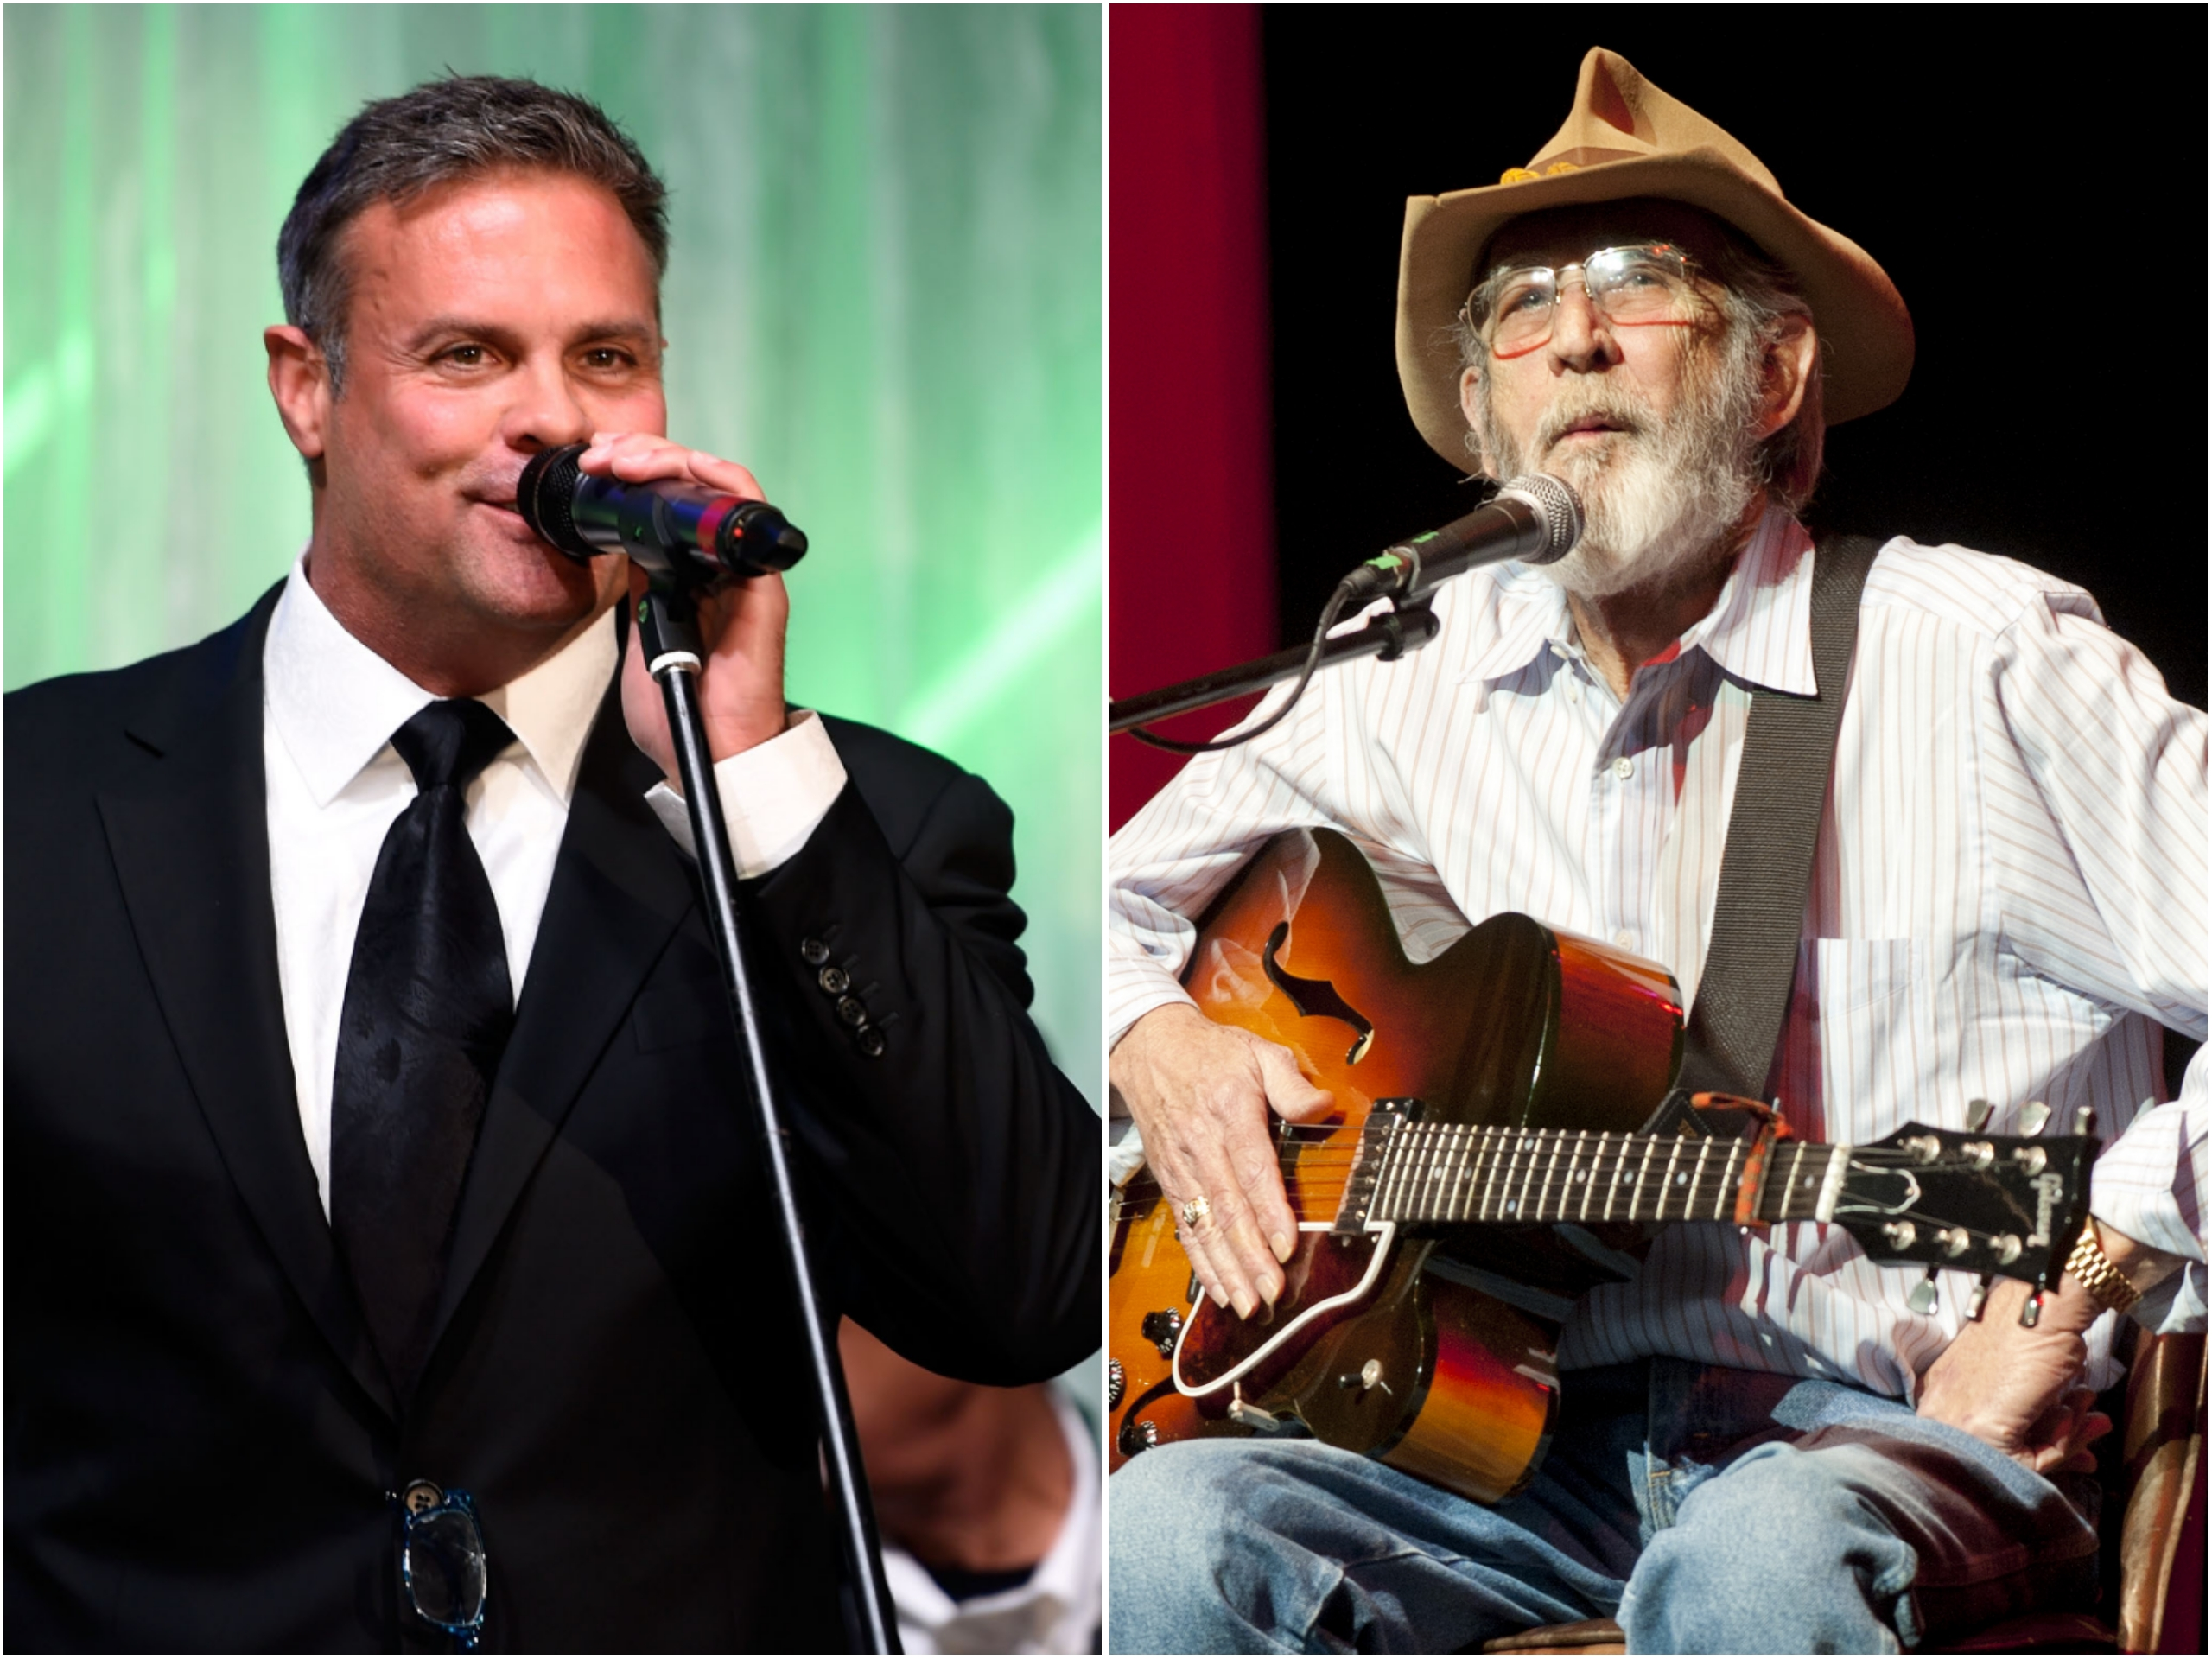 Country Music Community 'Shocked,' 'Heartbroken' Over the Deaths of Troy Gentry and Don Williams